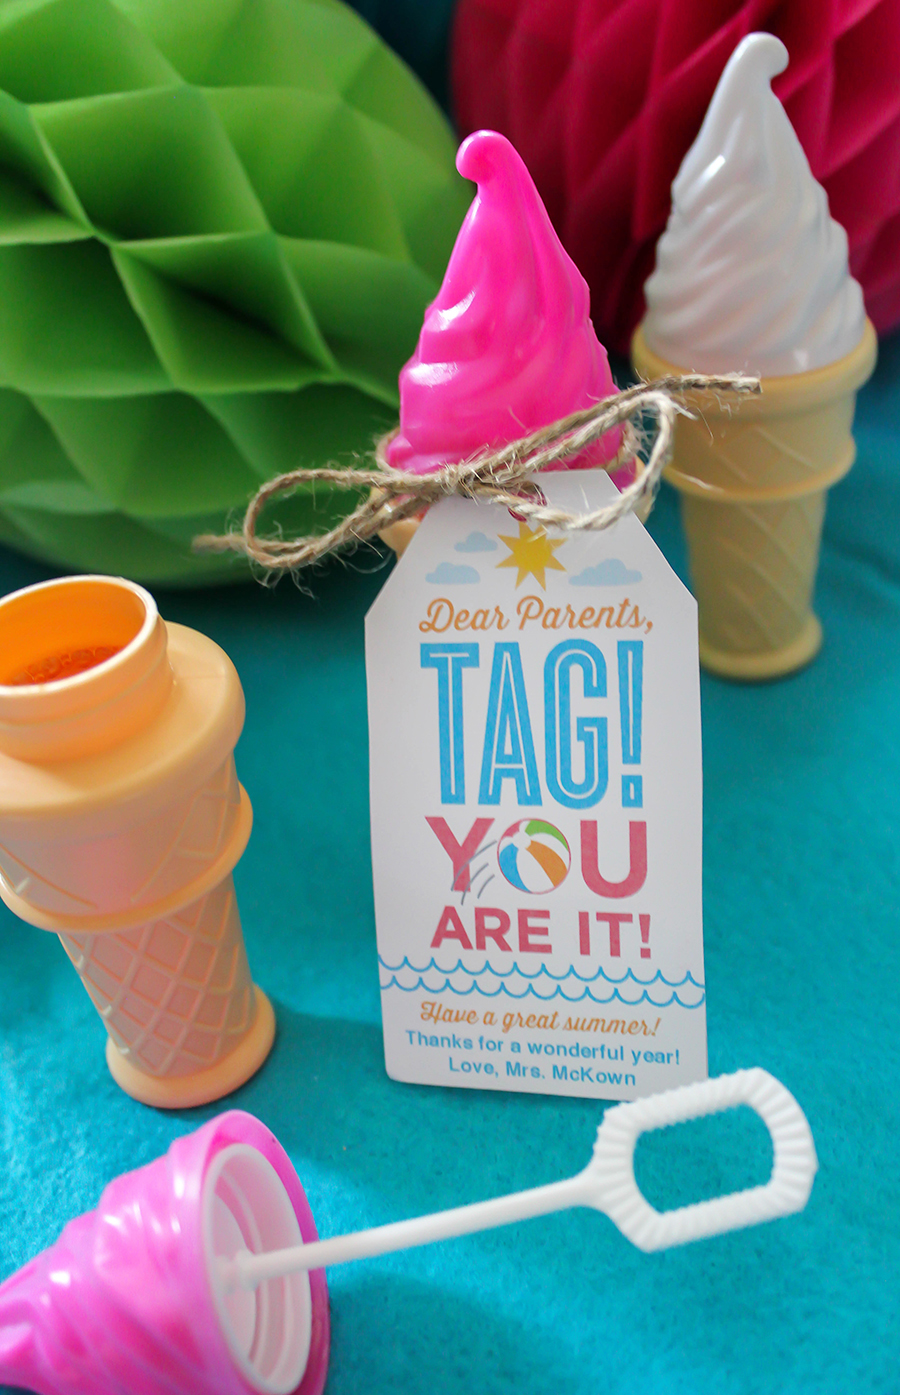 end of the school year gift idea, Dear Parents, Tag! You are it!, end of the school year gift, end of the school year classroom gift, end of the school year gift for students and families, funny end of the school year gift, tag, free printable, you're it, Just Add Confetti, Just Add Confetti free printable, end of the school year gift idea,